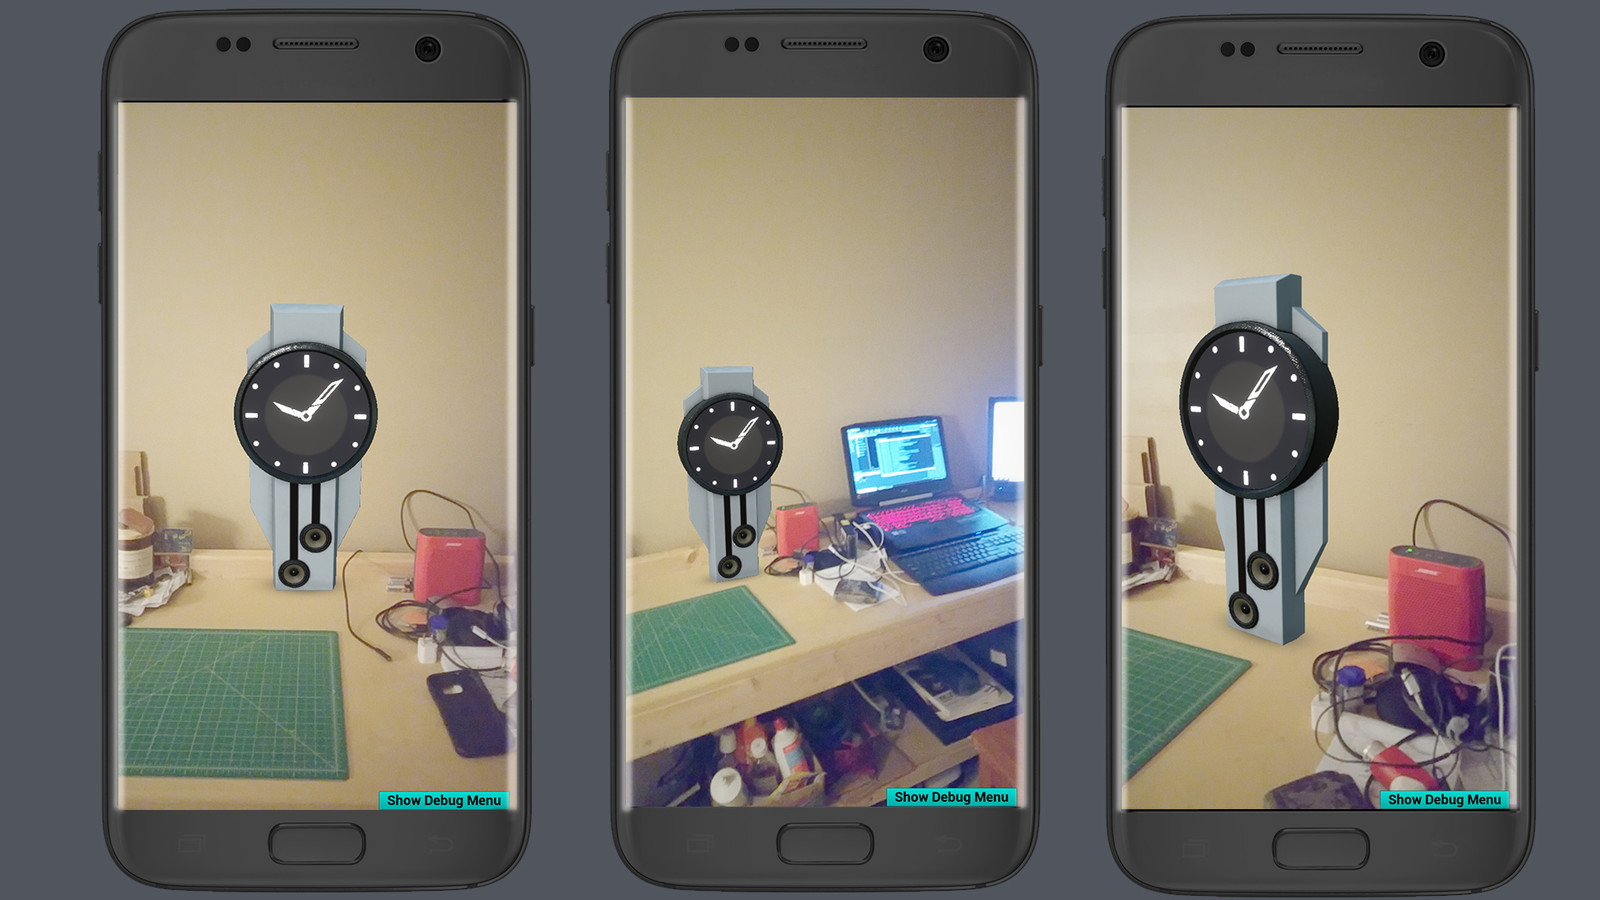 Mobile Augmented Reality Screenshots  Here I explored creating an augmented reality phone app in order to better understand how the product will look in the real world.